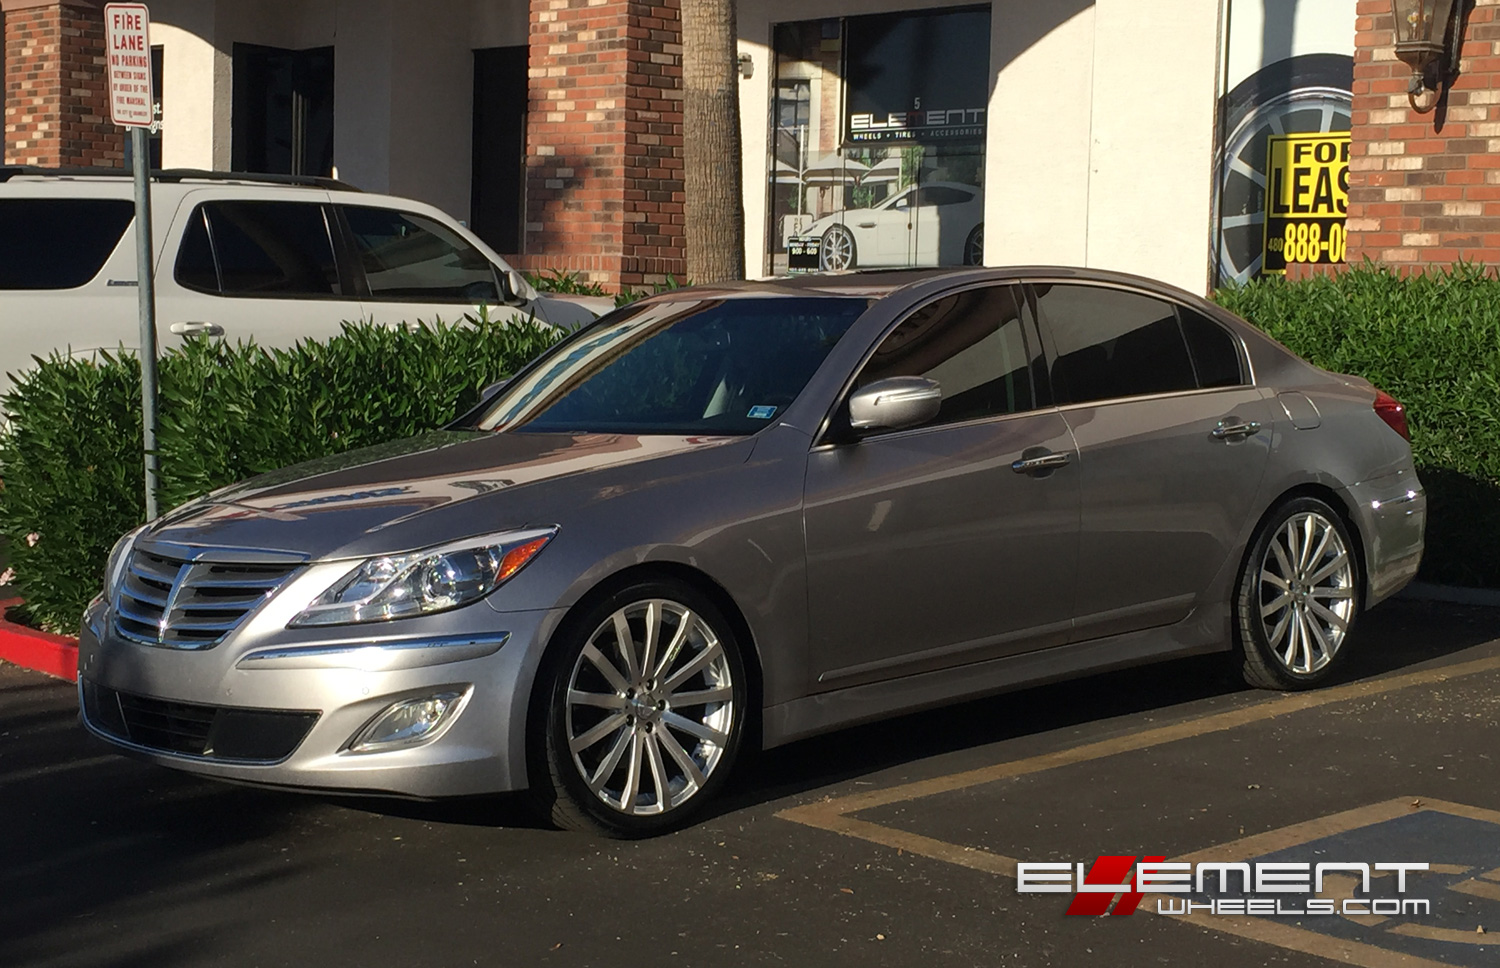 hight resolution of 20 inch mrr hr9 wheels on 2012 hyundai genesis sedan w specs element wheels